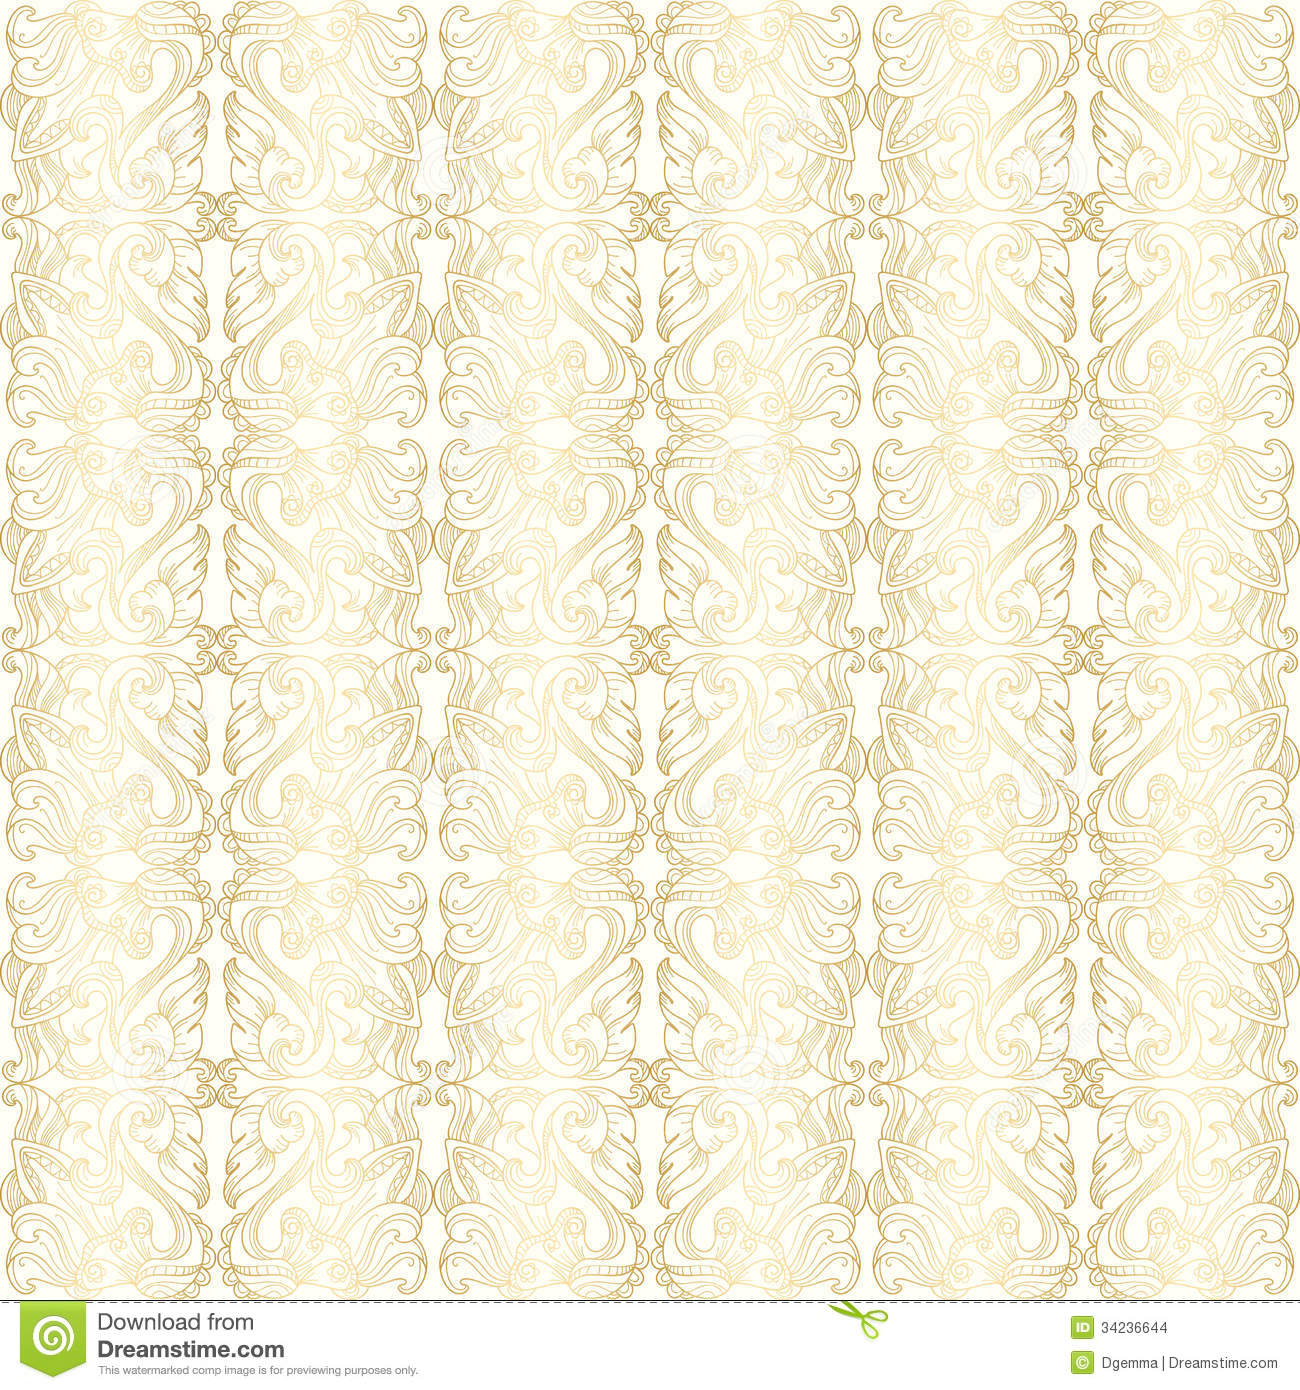 white and gold floral wallpaper - photo #48